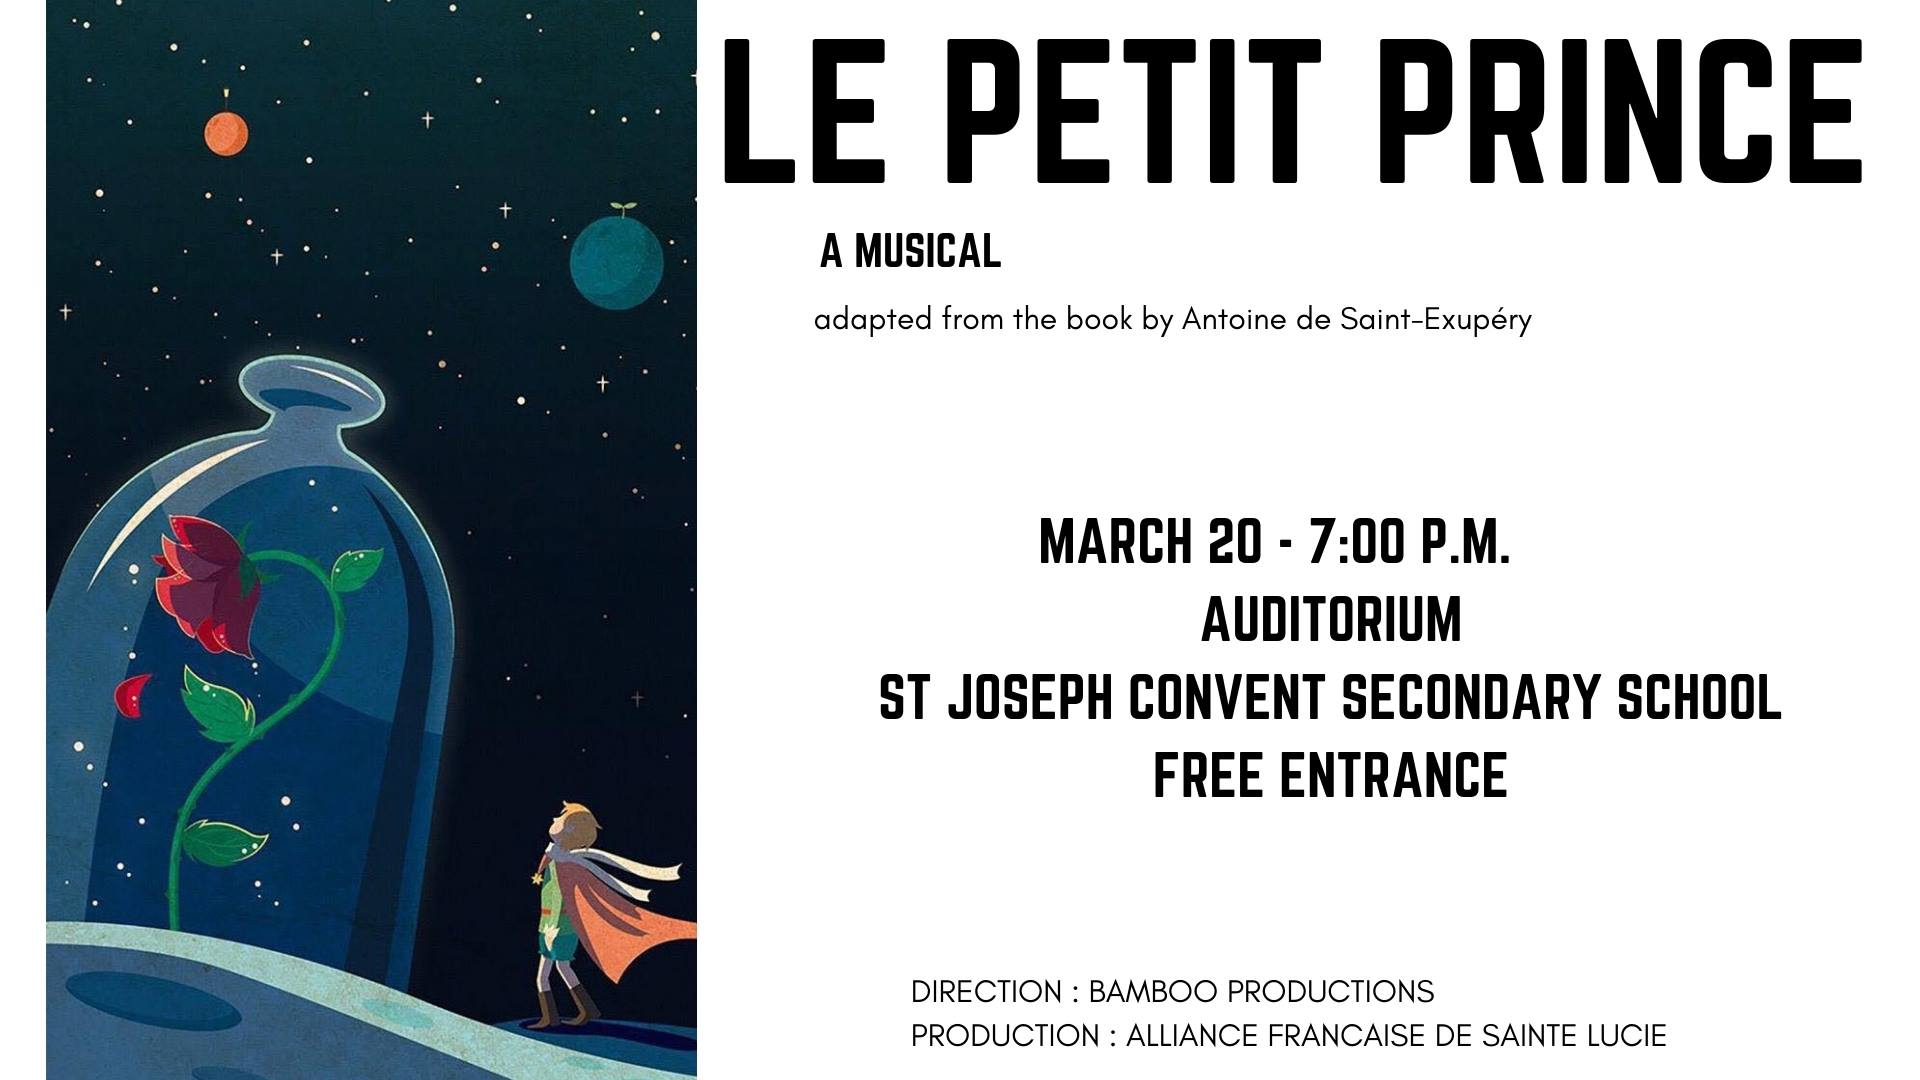 On March 20th, the St. Joseph's Convent Secondary School Auditorium will be the place to enjoy an amazing show adapted from the famous french tale « Le Petit Prince by Antoine de Saint Exupéry » A Musical, mostly performed in French, by non-professionnal talents and directed by the saint lucian cultural association : Bamboo Production. Put this date on your agenda and come numerous ! FREE ENTRY This event is part of our festivities planned for « Le Mois de la Francophonie »